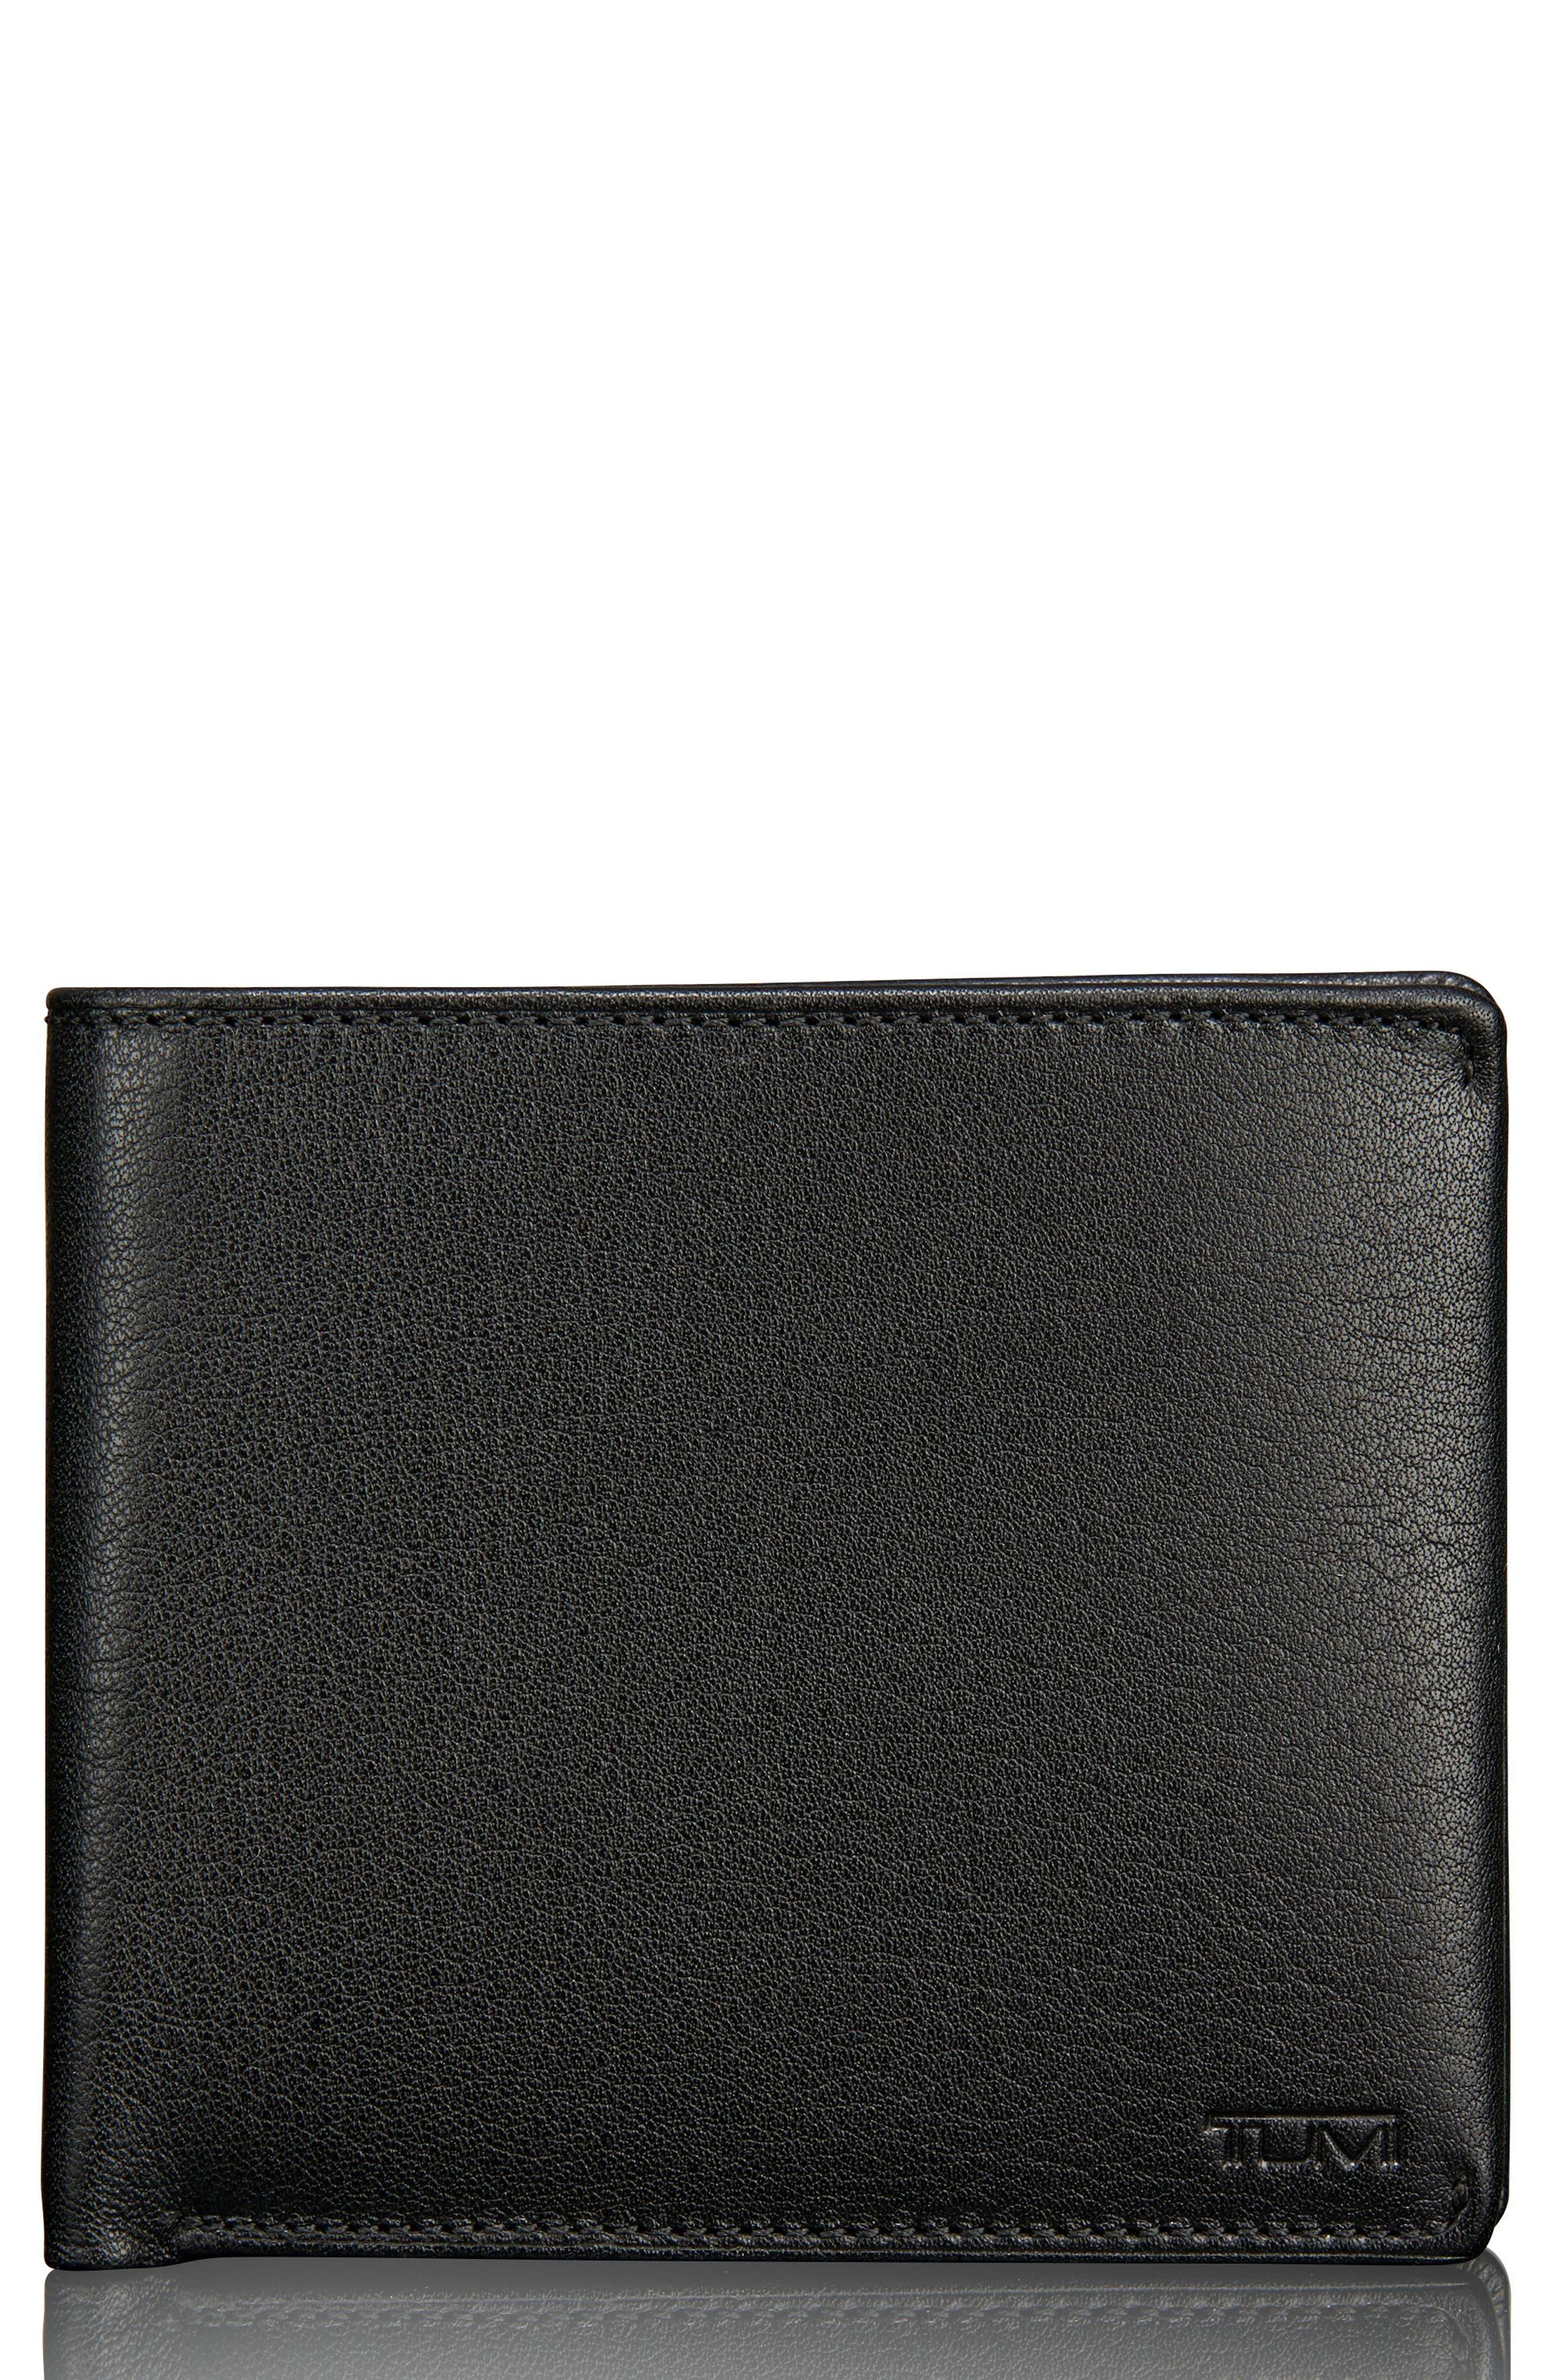 Global Leather Passcase Wallet,                         Main,                         color, Black Textured